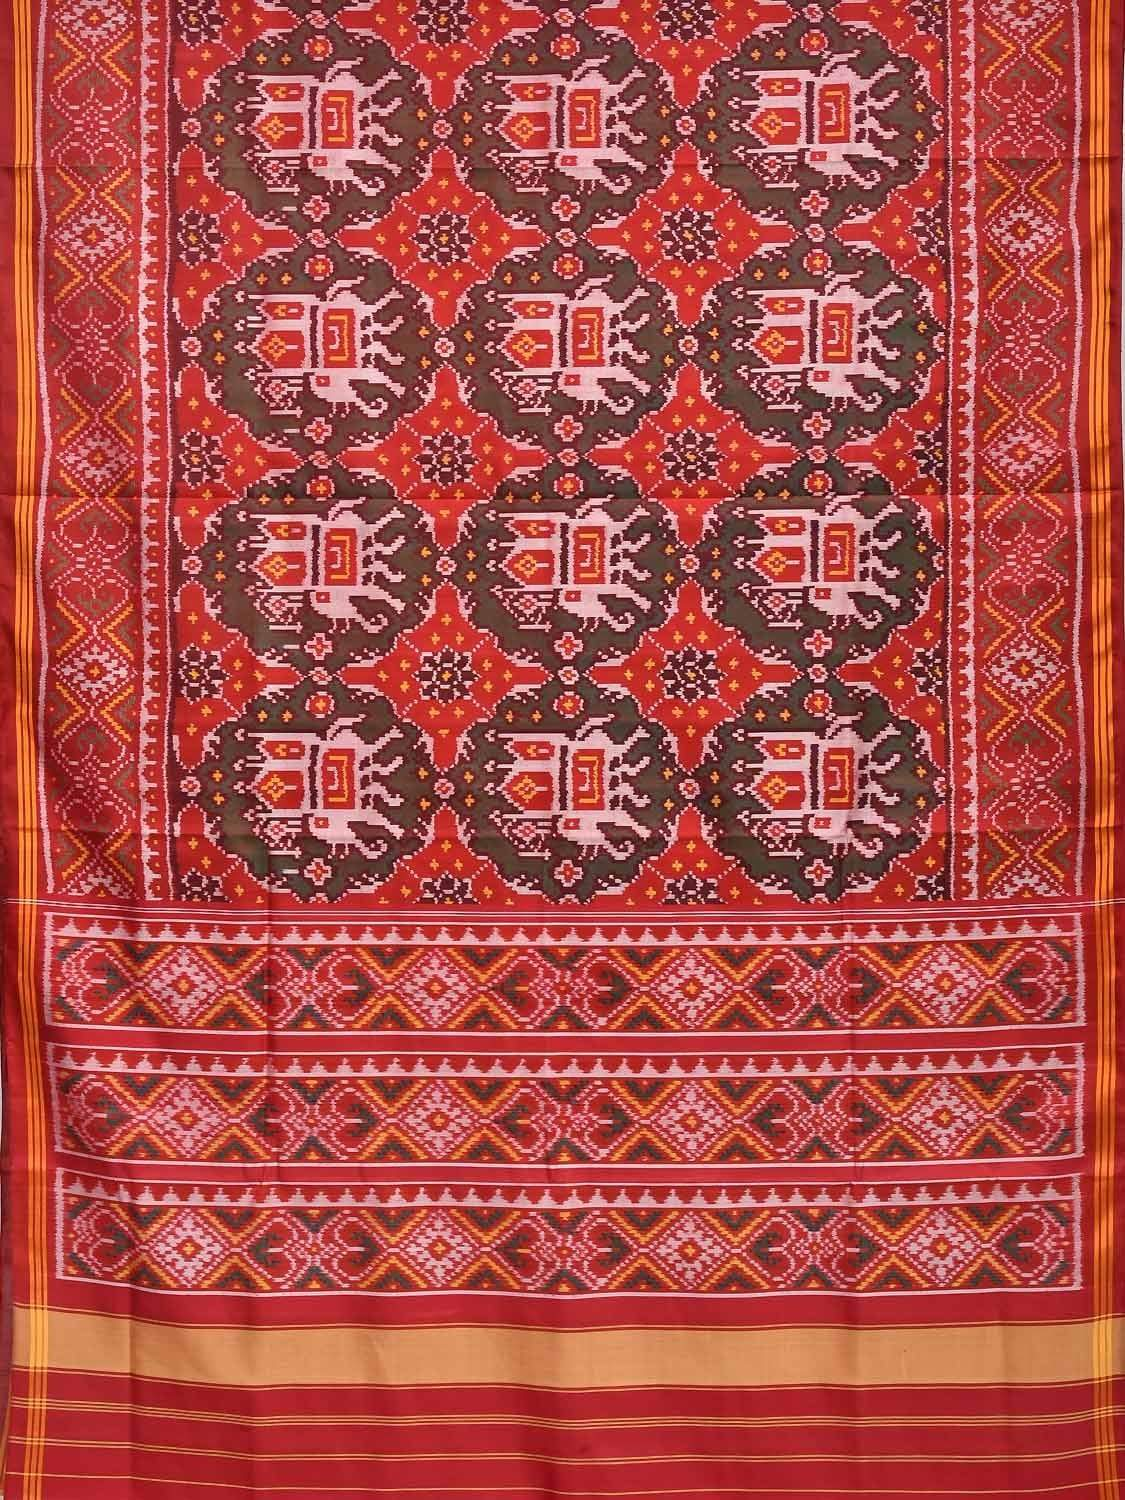 Red Pochampally Ikat Silk Handloom Saree with All Over Elephant Design i0525